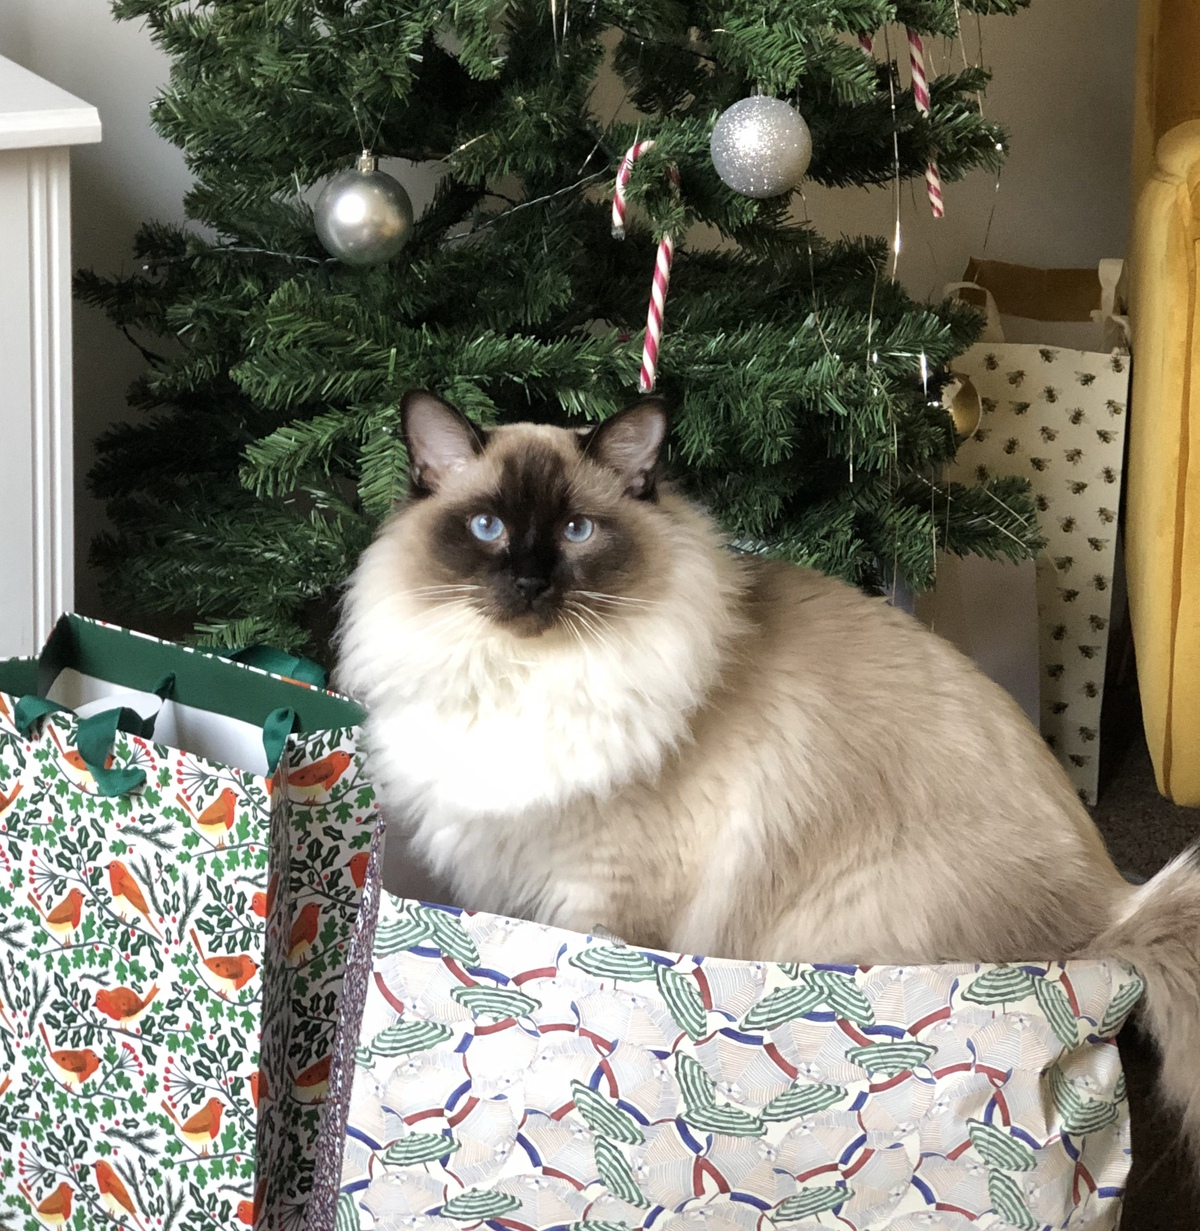 Cat in a Christmas gift bag